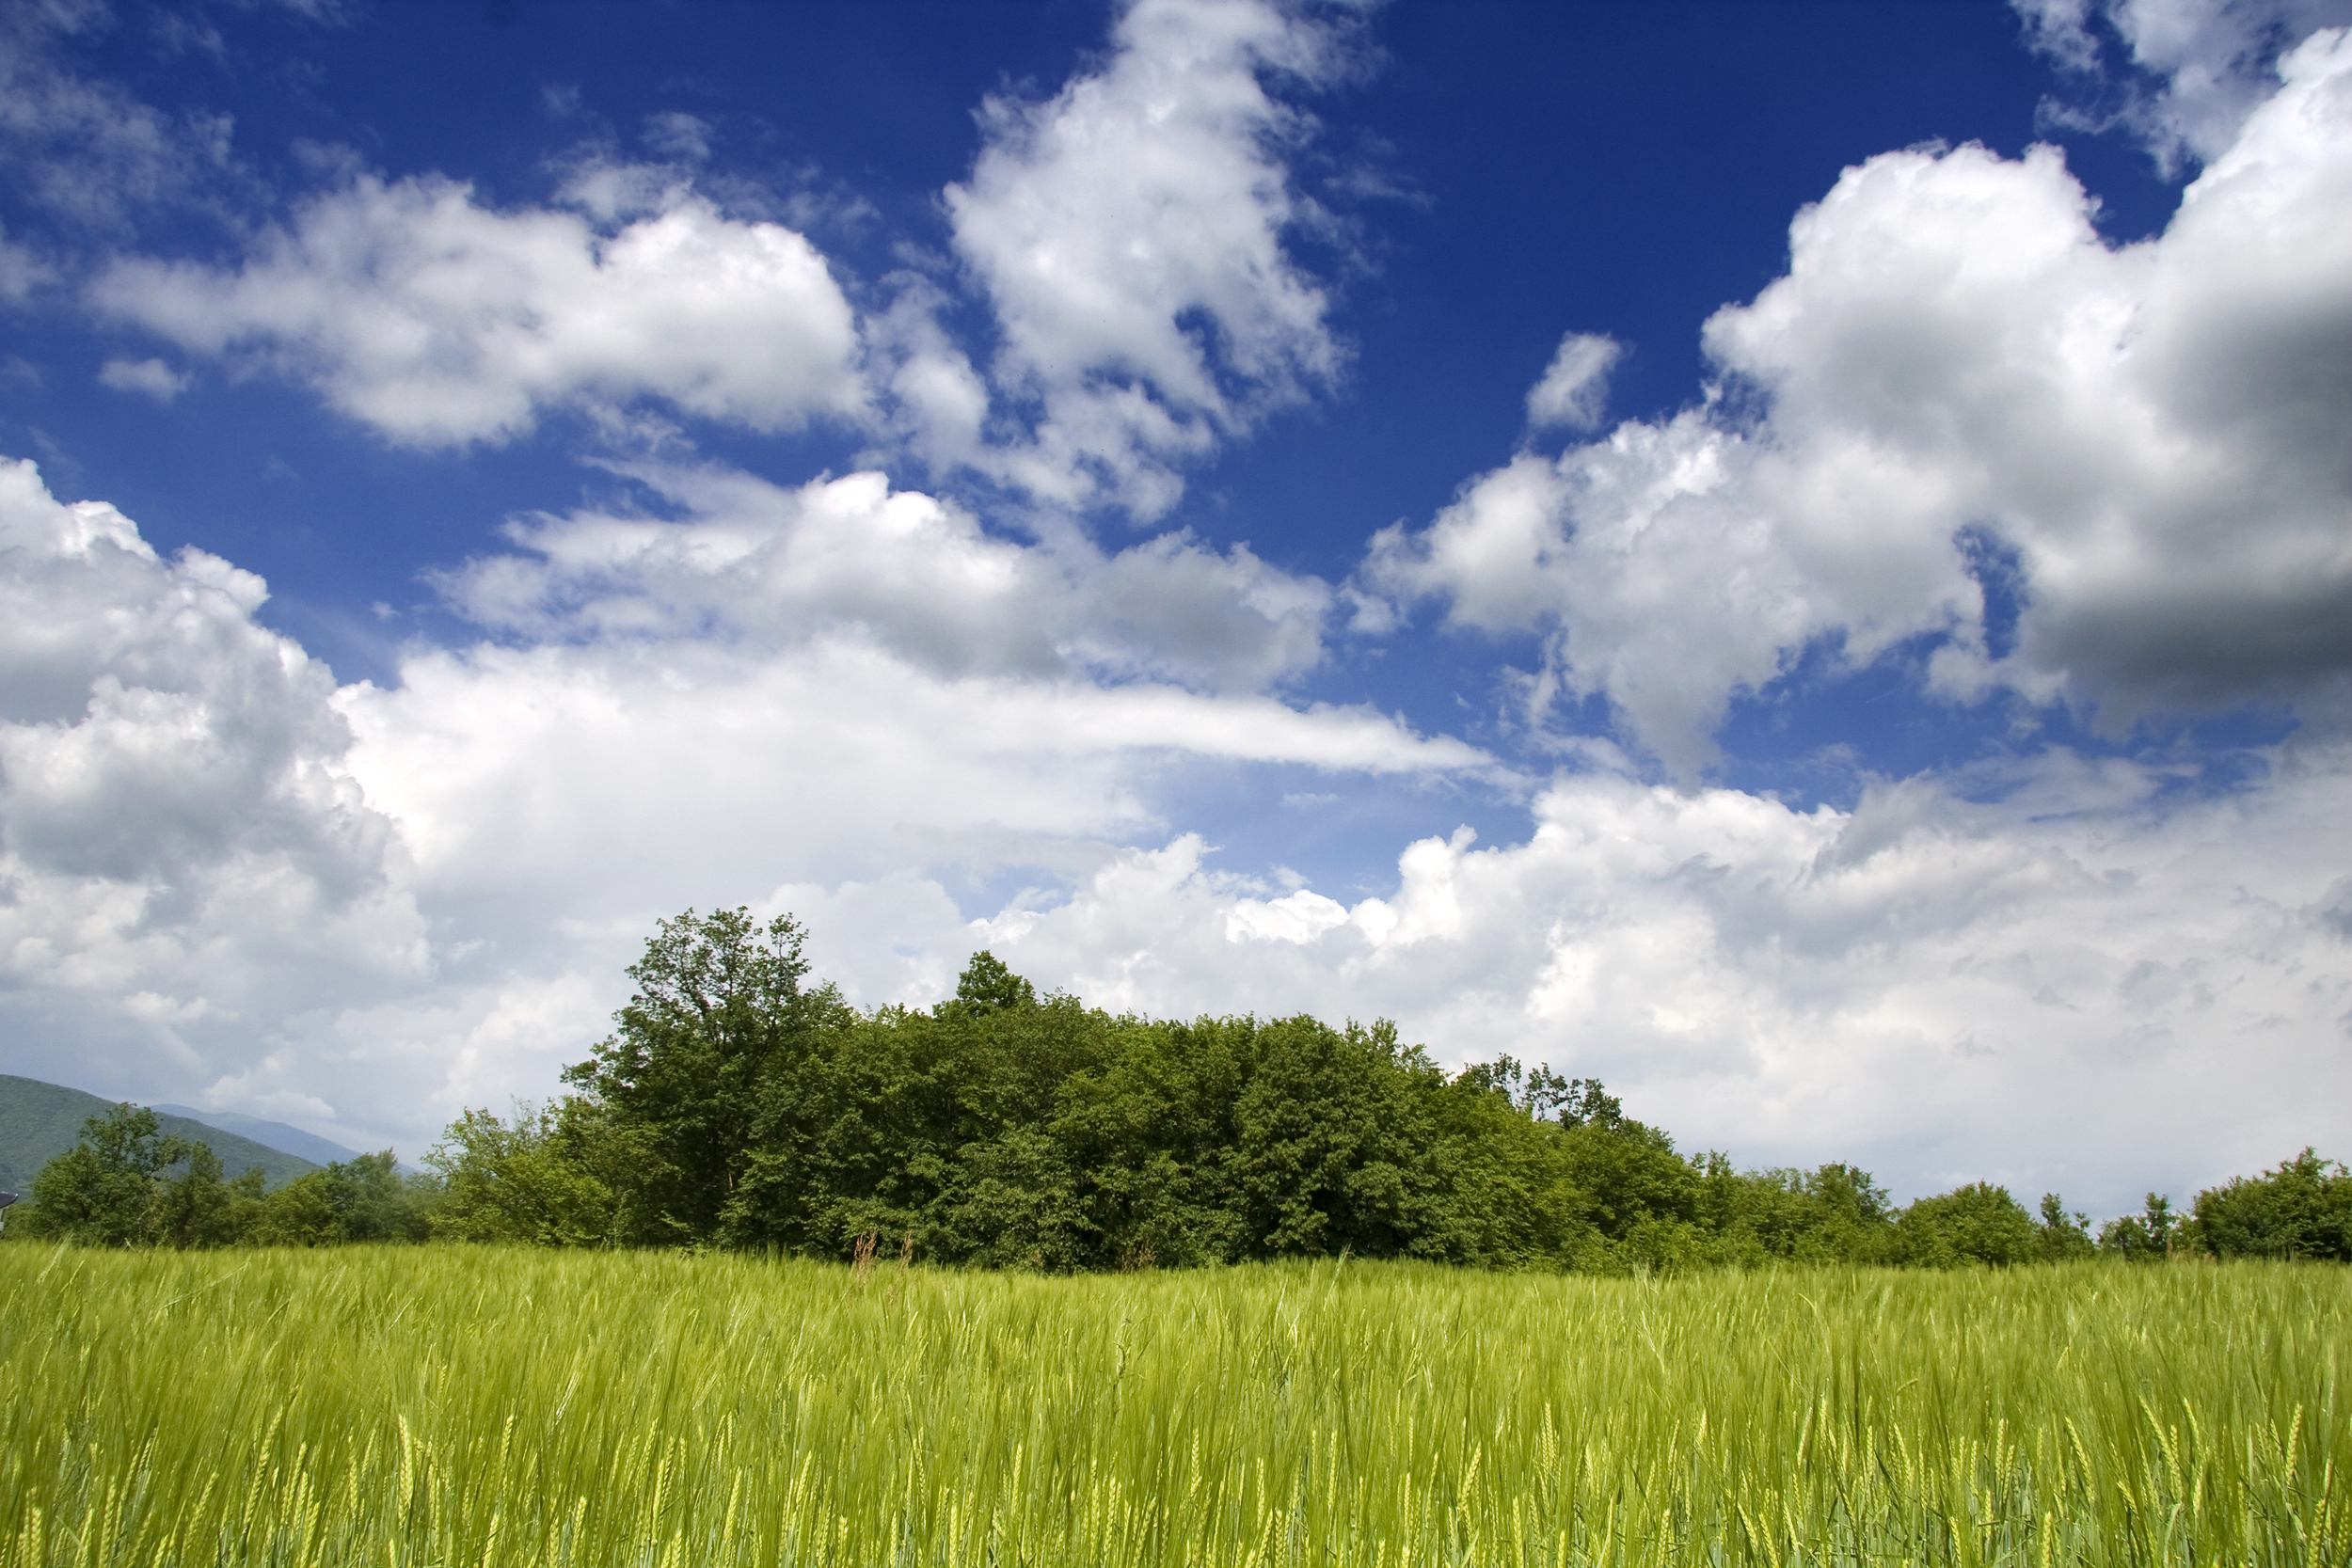 Sky, Sky images, Landscape, Field, Blue, HQ Photo